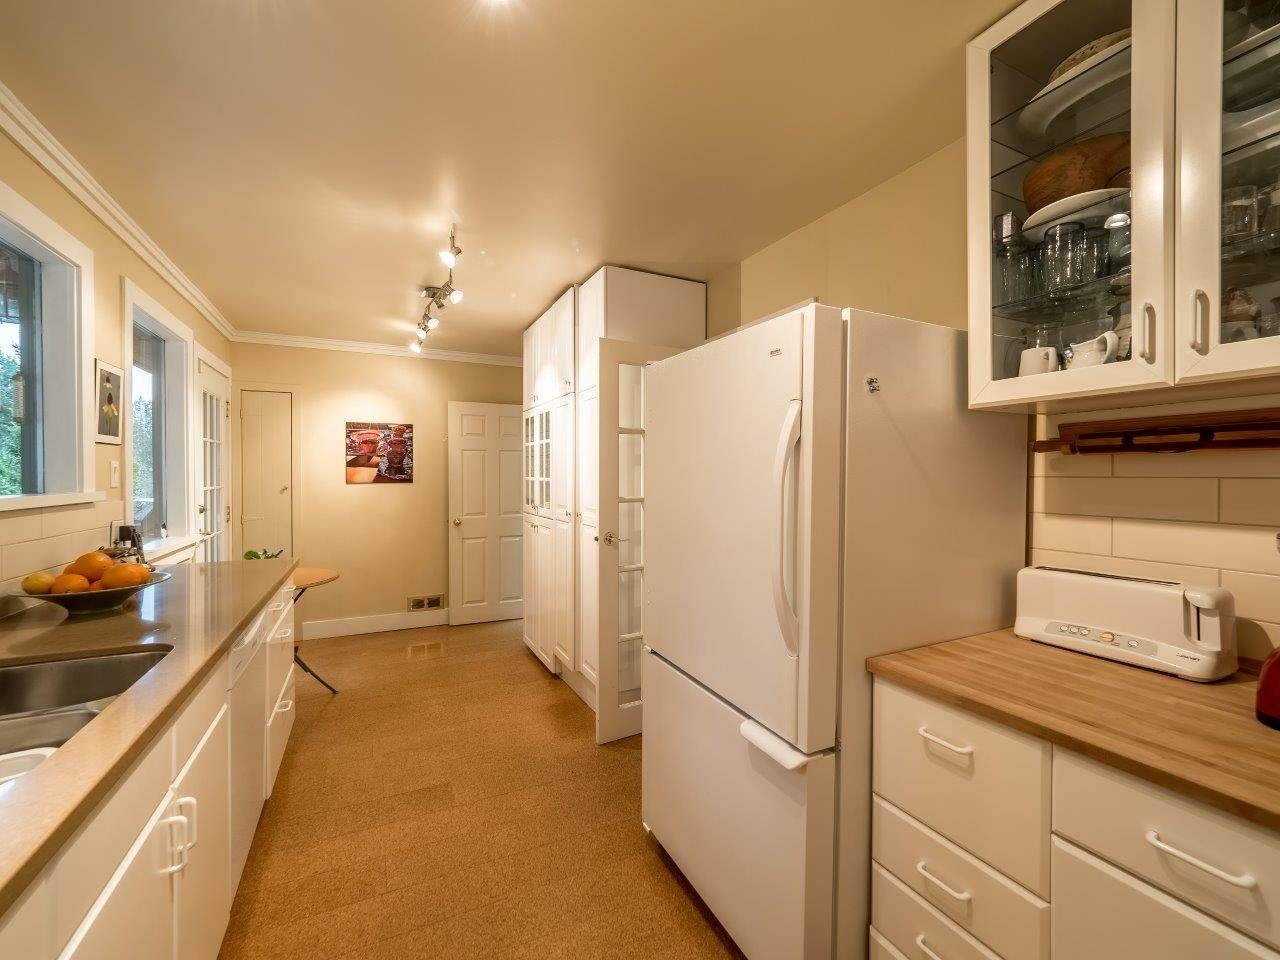 Photo 8: Photos: 3322 WAYNE Drive in North Vancouver: Delbrook House for sale : MLS®# R2045446